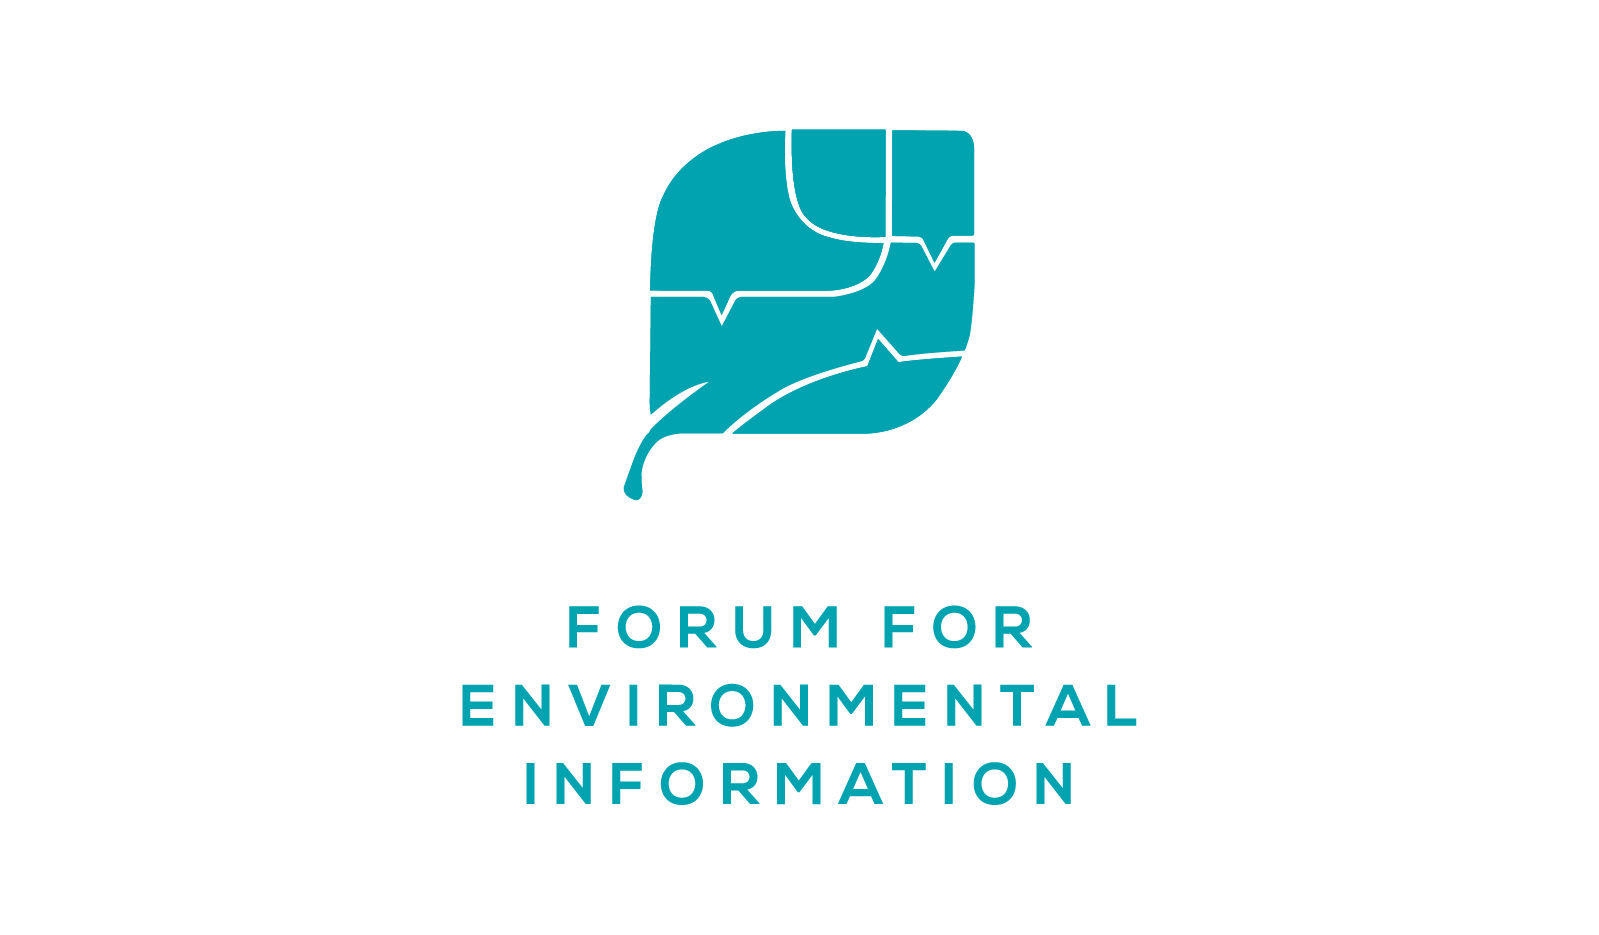 Forum for environmental information logo